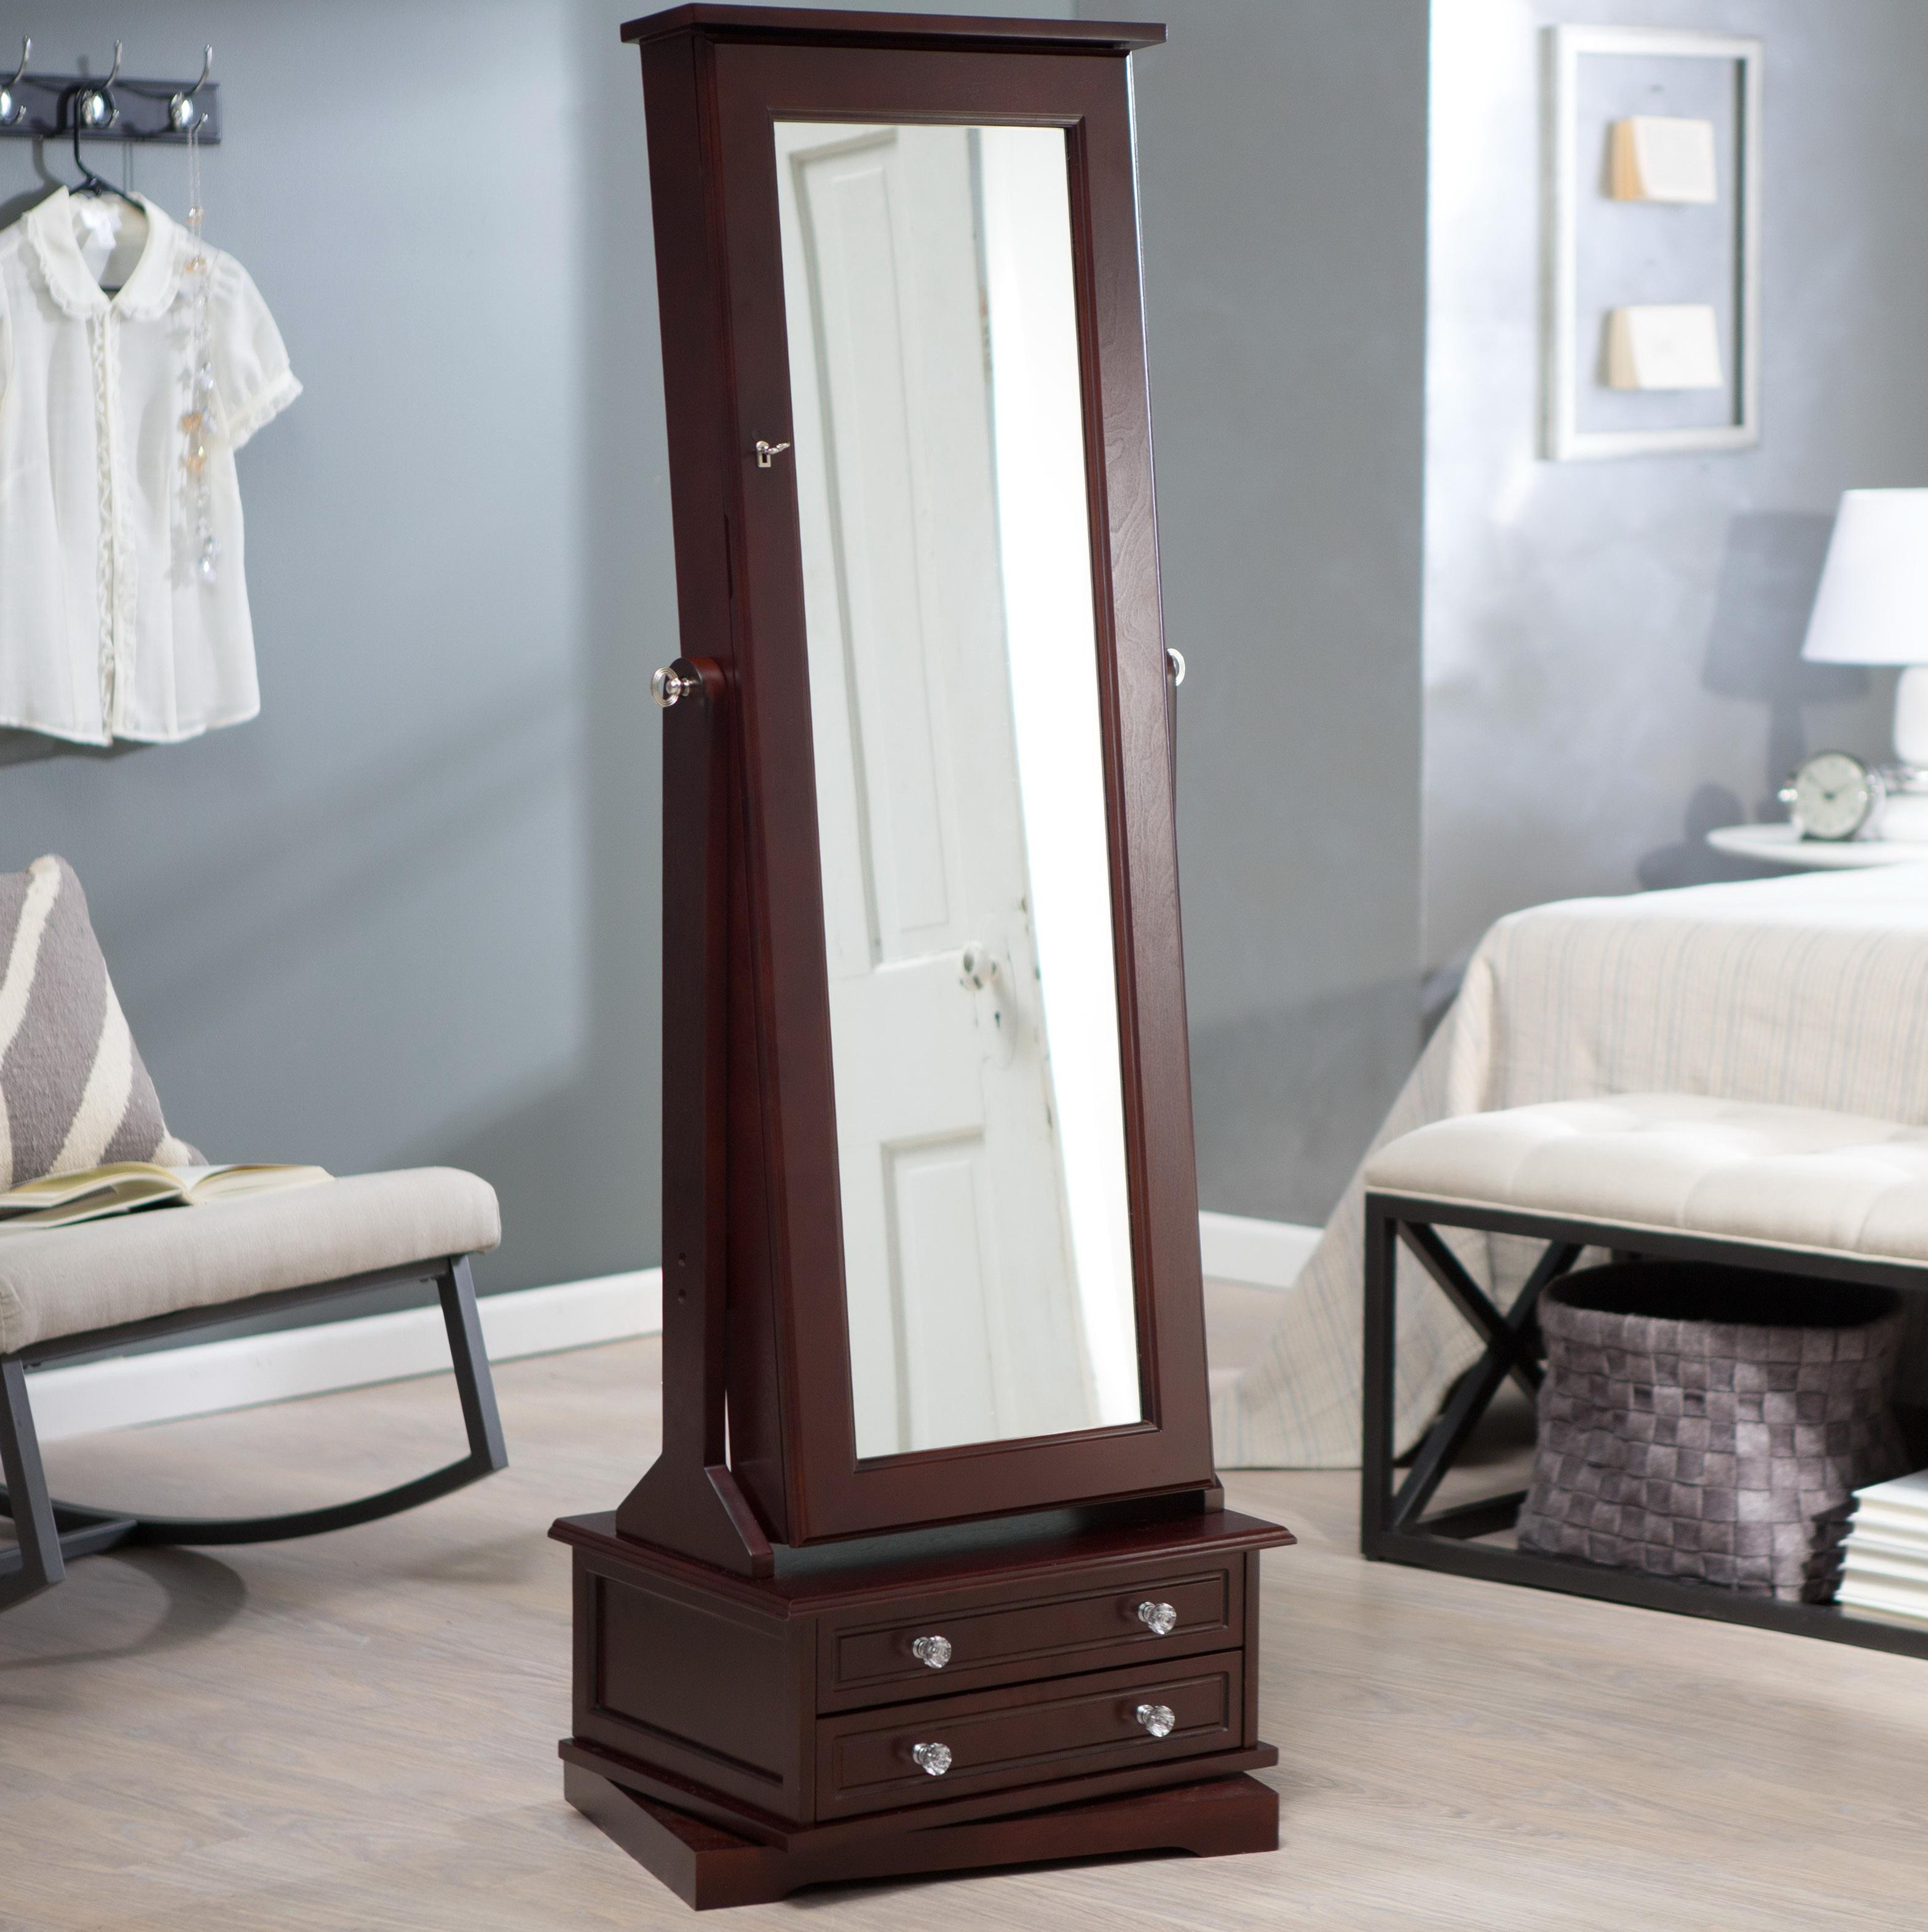 Bedroom Furniture : Floor Mirror White Floor Mirror Shabby Chic Regarding Shabby Chic Large Mirror (Image 3 of 20)